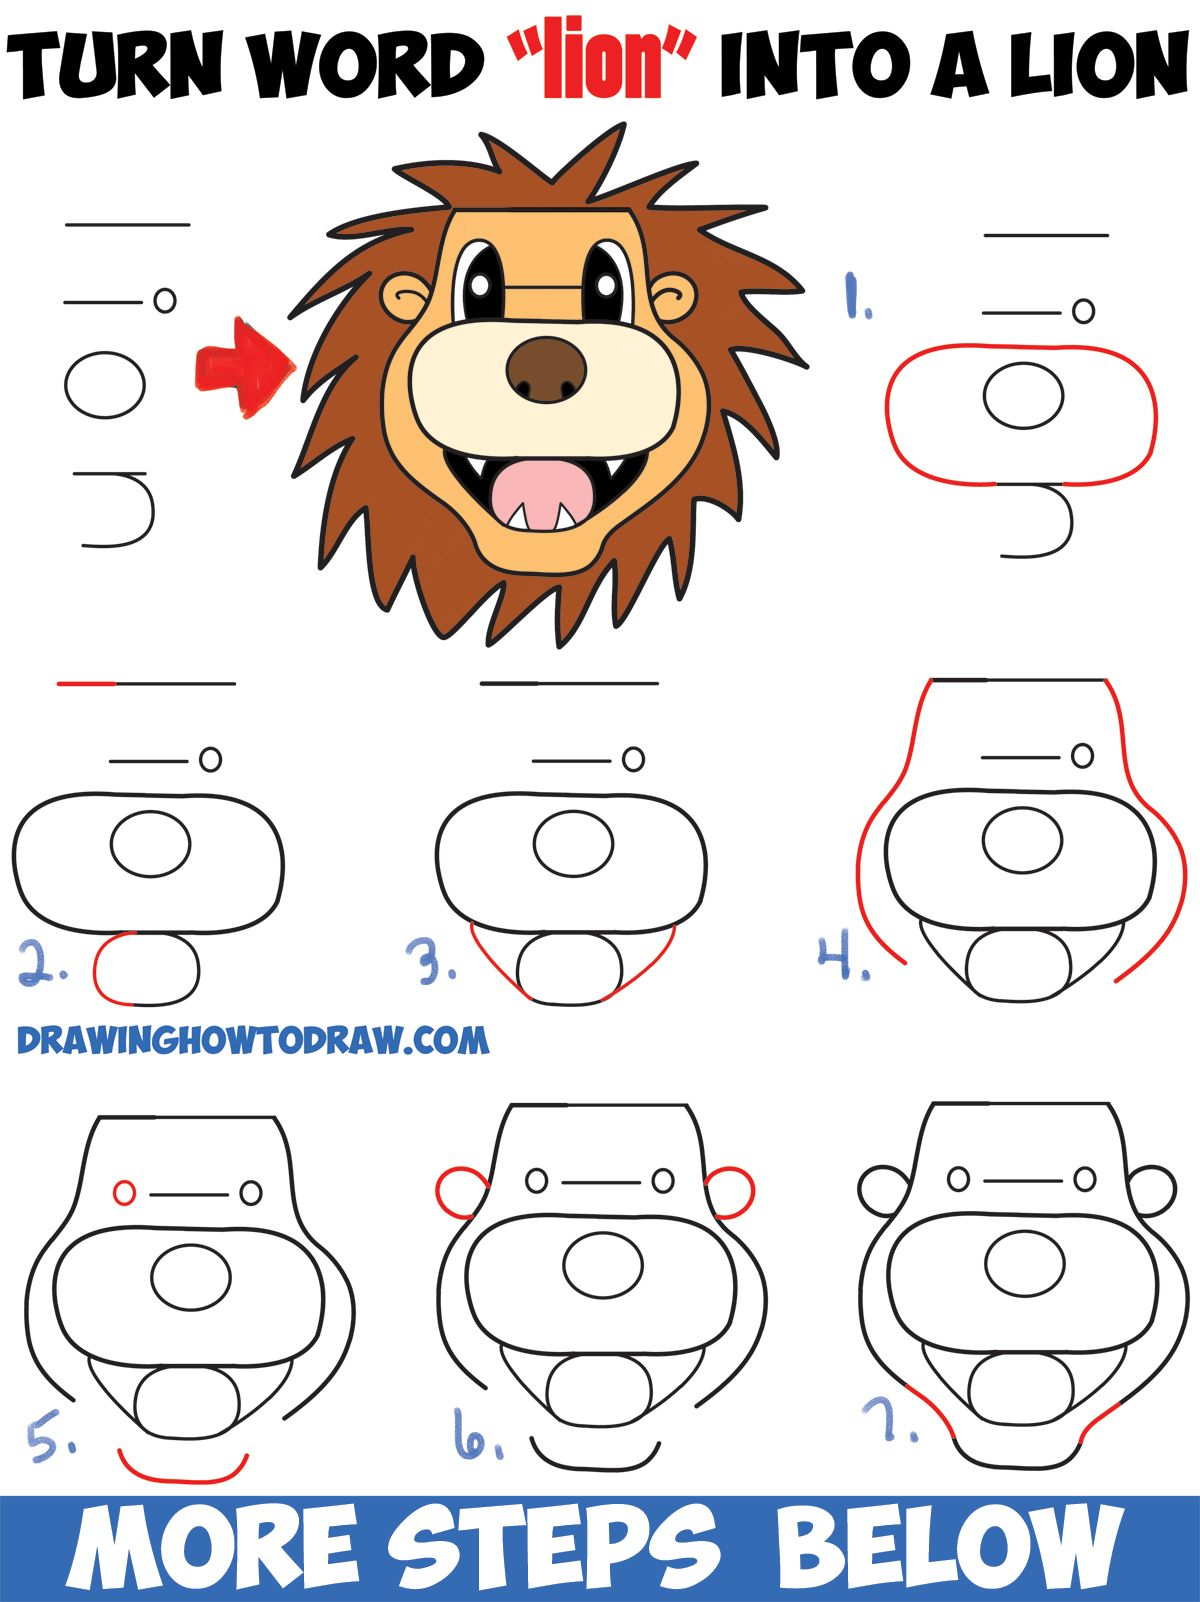 how to turn the word lion into a cartoon lion easy step by step drawing tutorial for kids how to draw step by step drawing tutorials